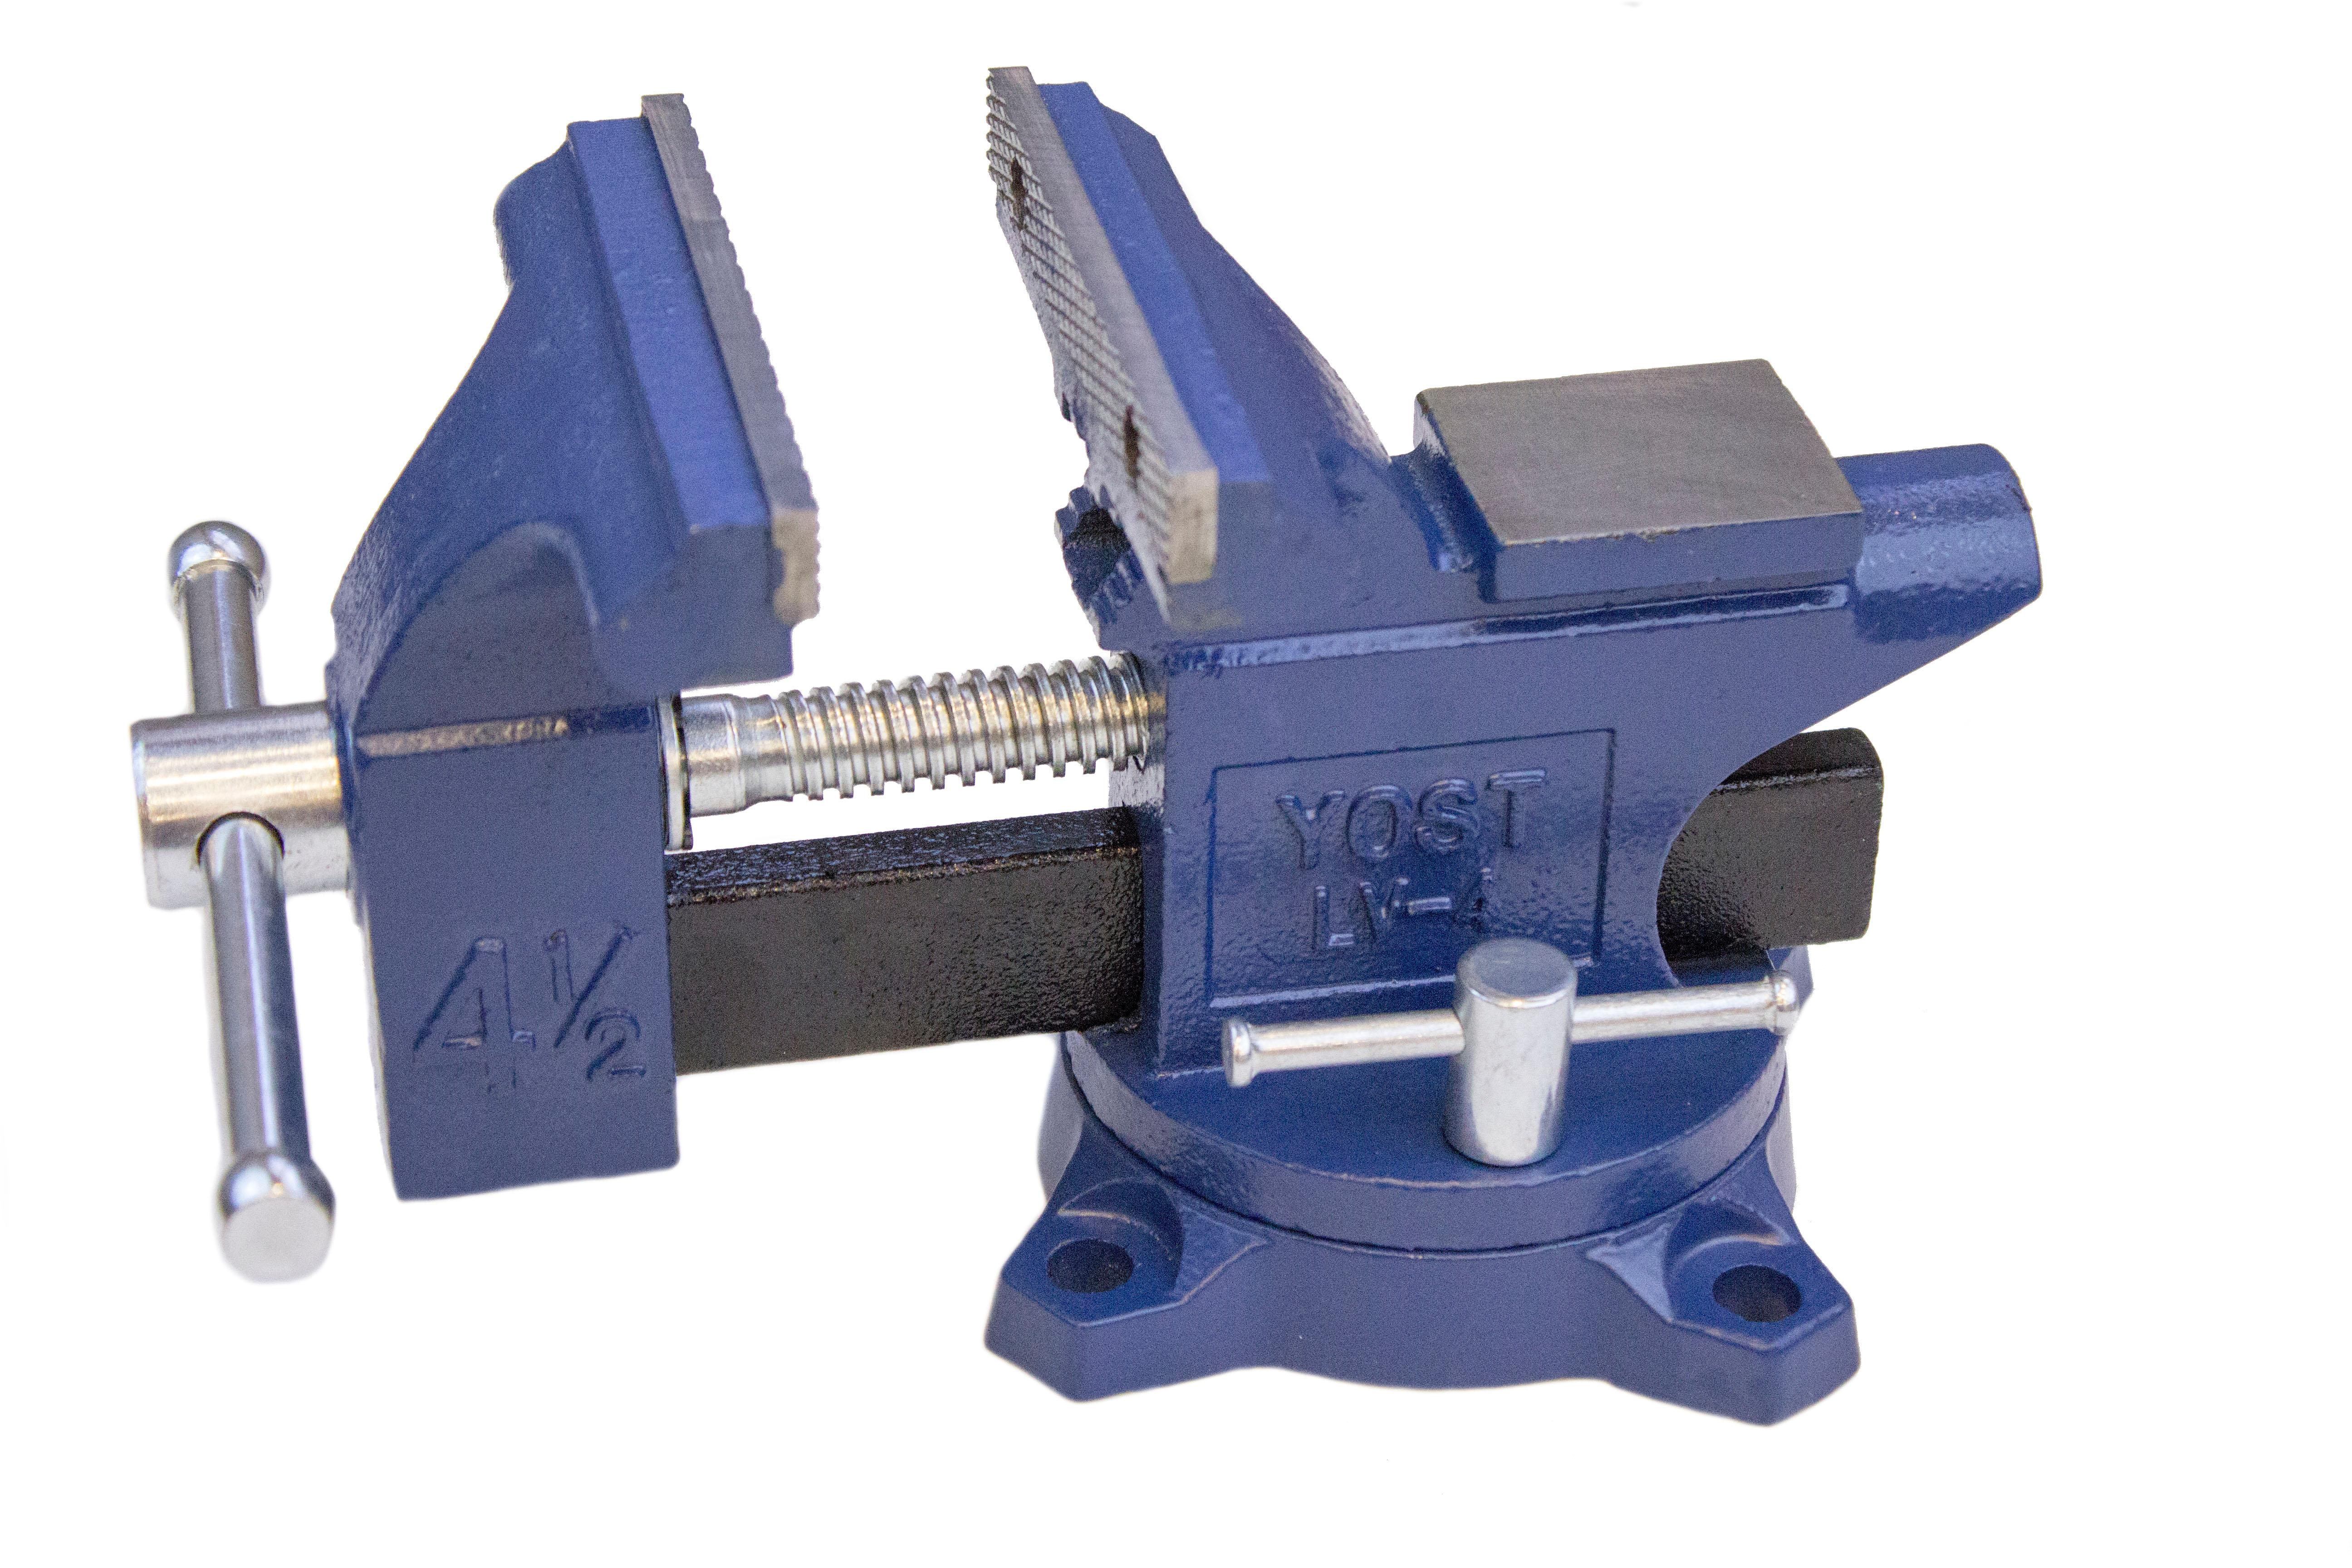 Yost Lv-4 Home Vise Bench Clamps Swivel Shop Steel Jaw Tool 4-1//2 Inch Base NEW